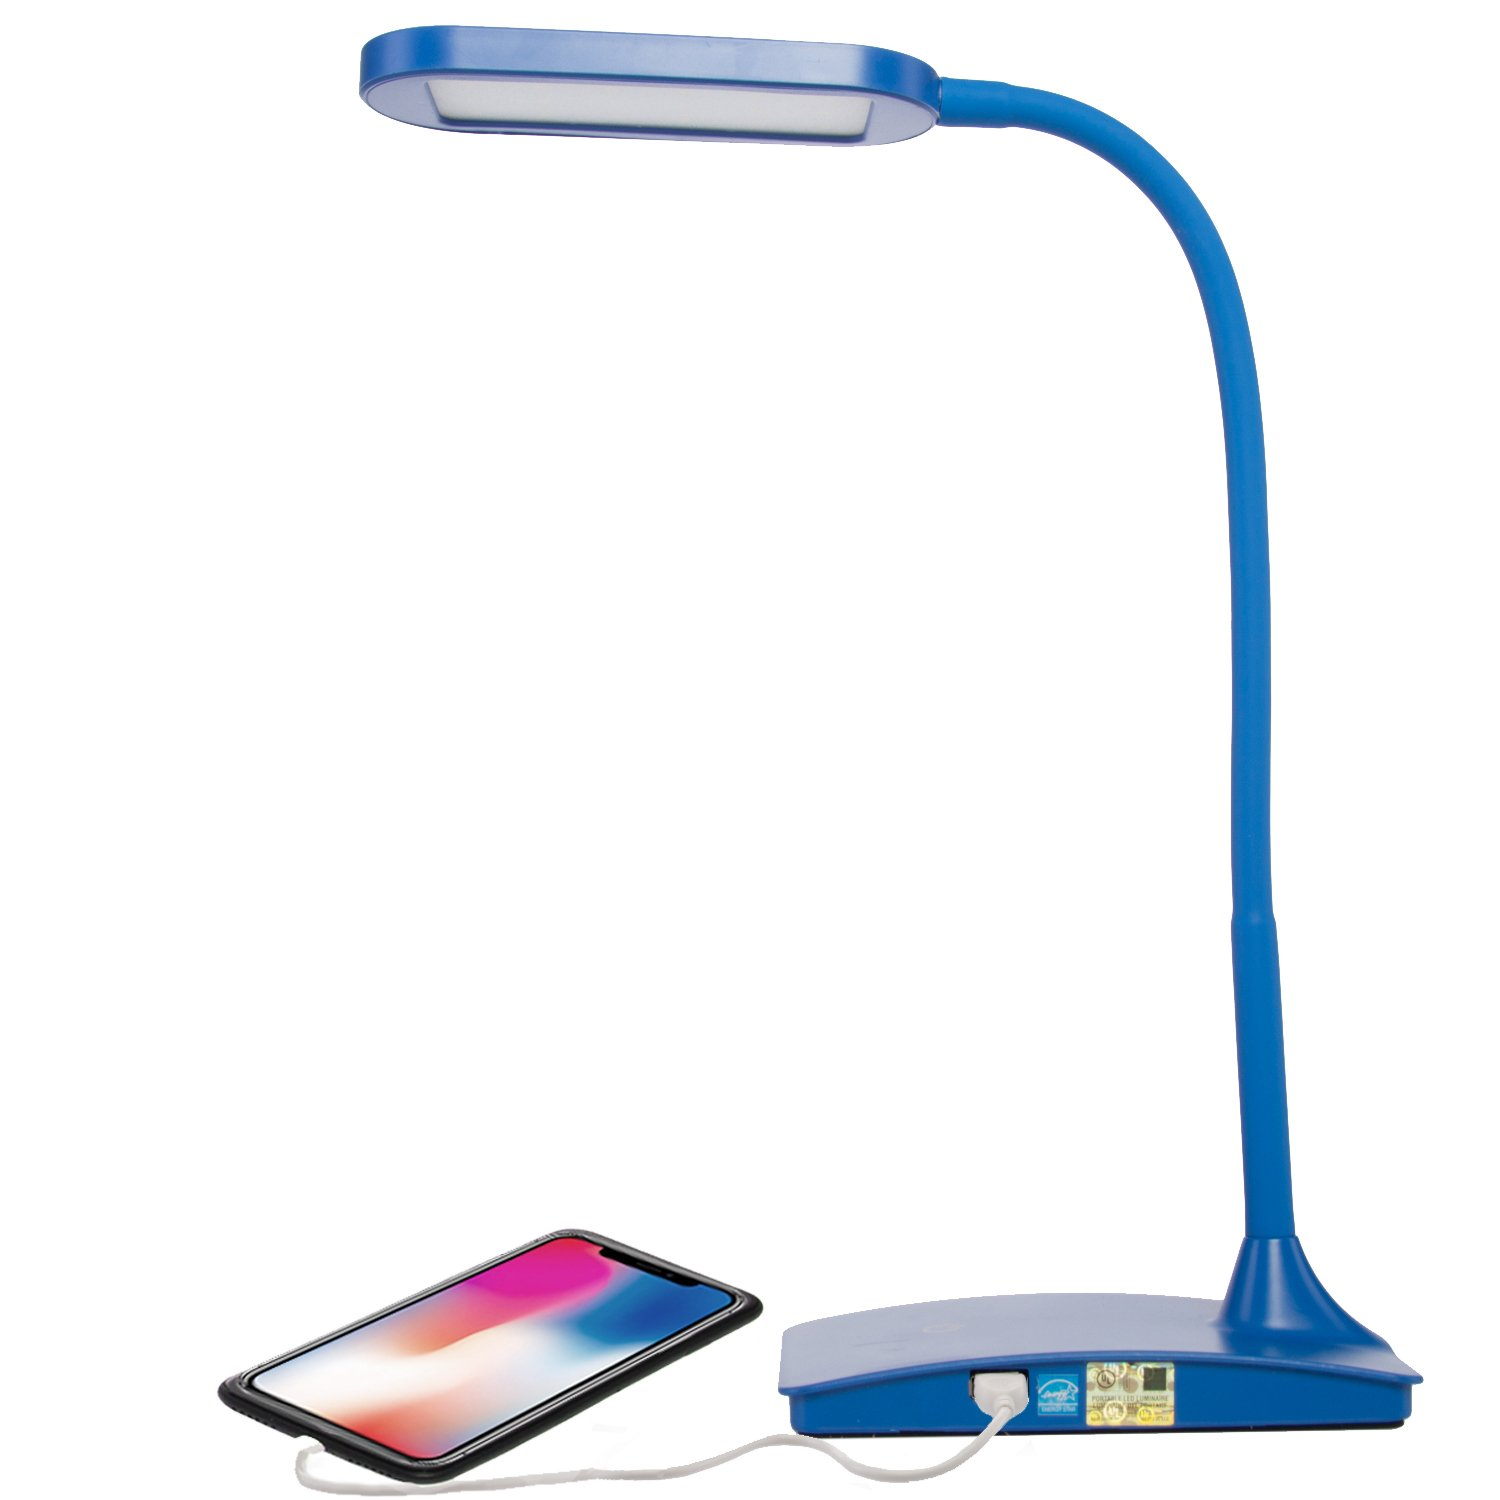 Tw Lighting Ivy 40wt Led Desk Lamp With Usb Port 3 Way